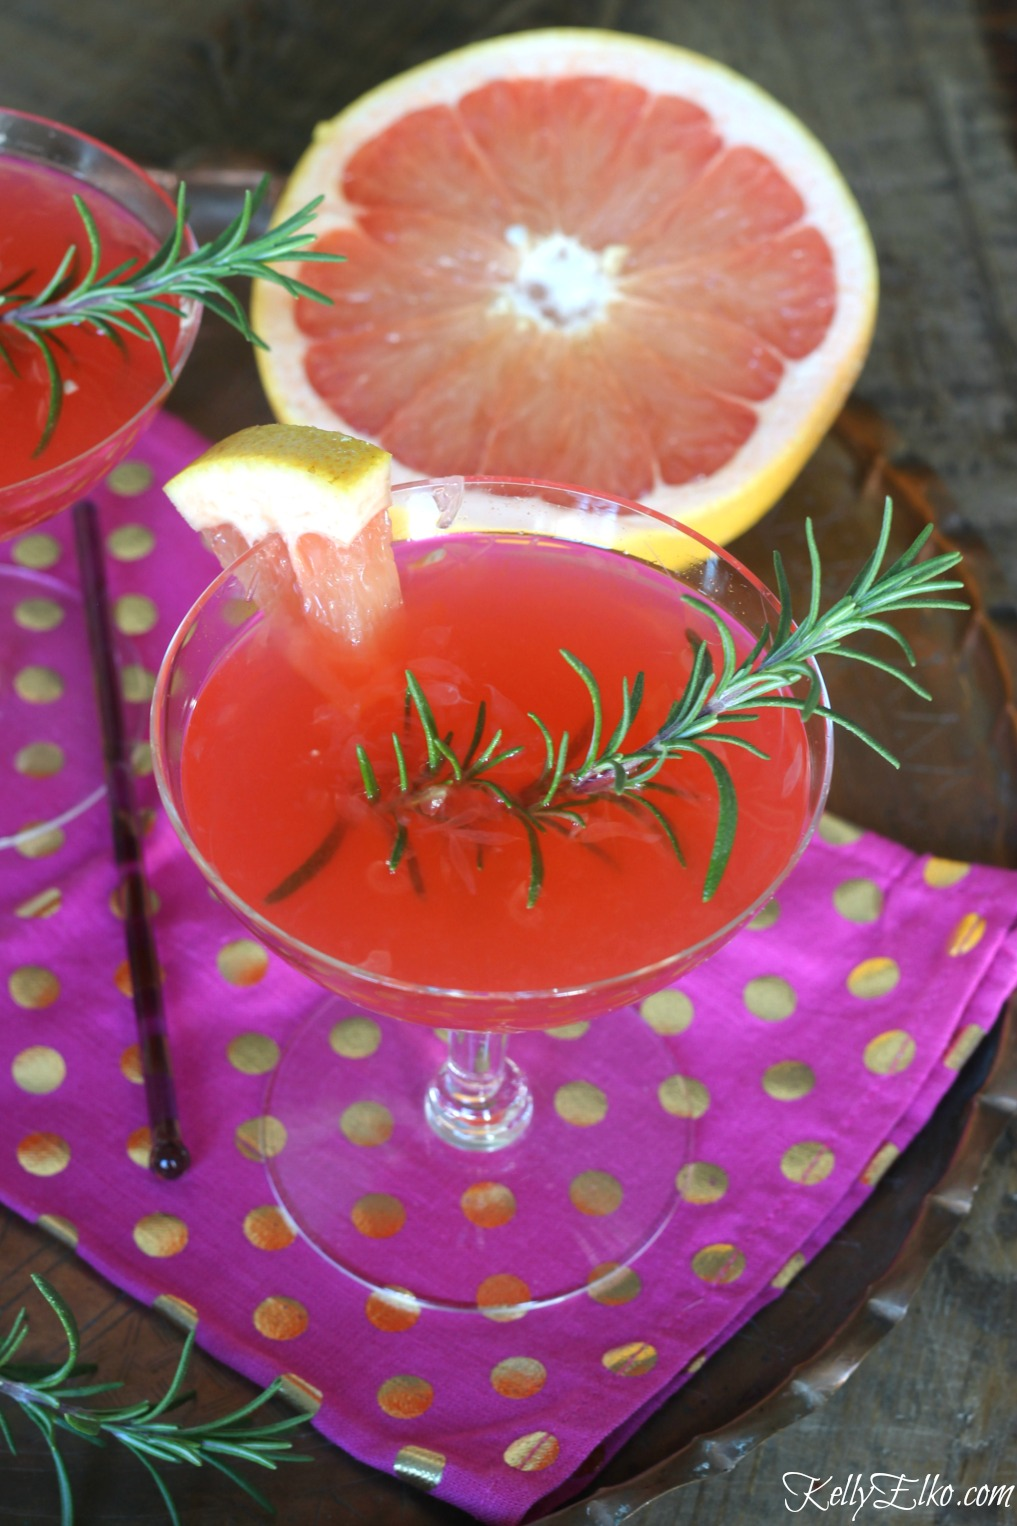 Festive Grapefruit Cocktail - mix up a batch for your next party and impress your guests kellyelko.com